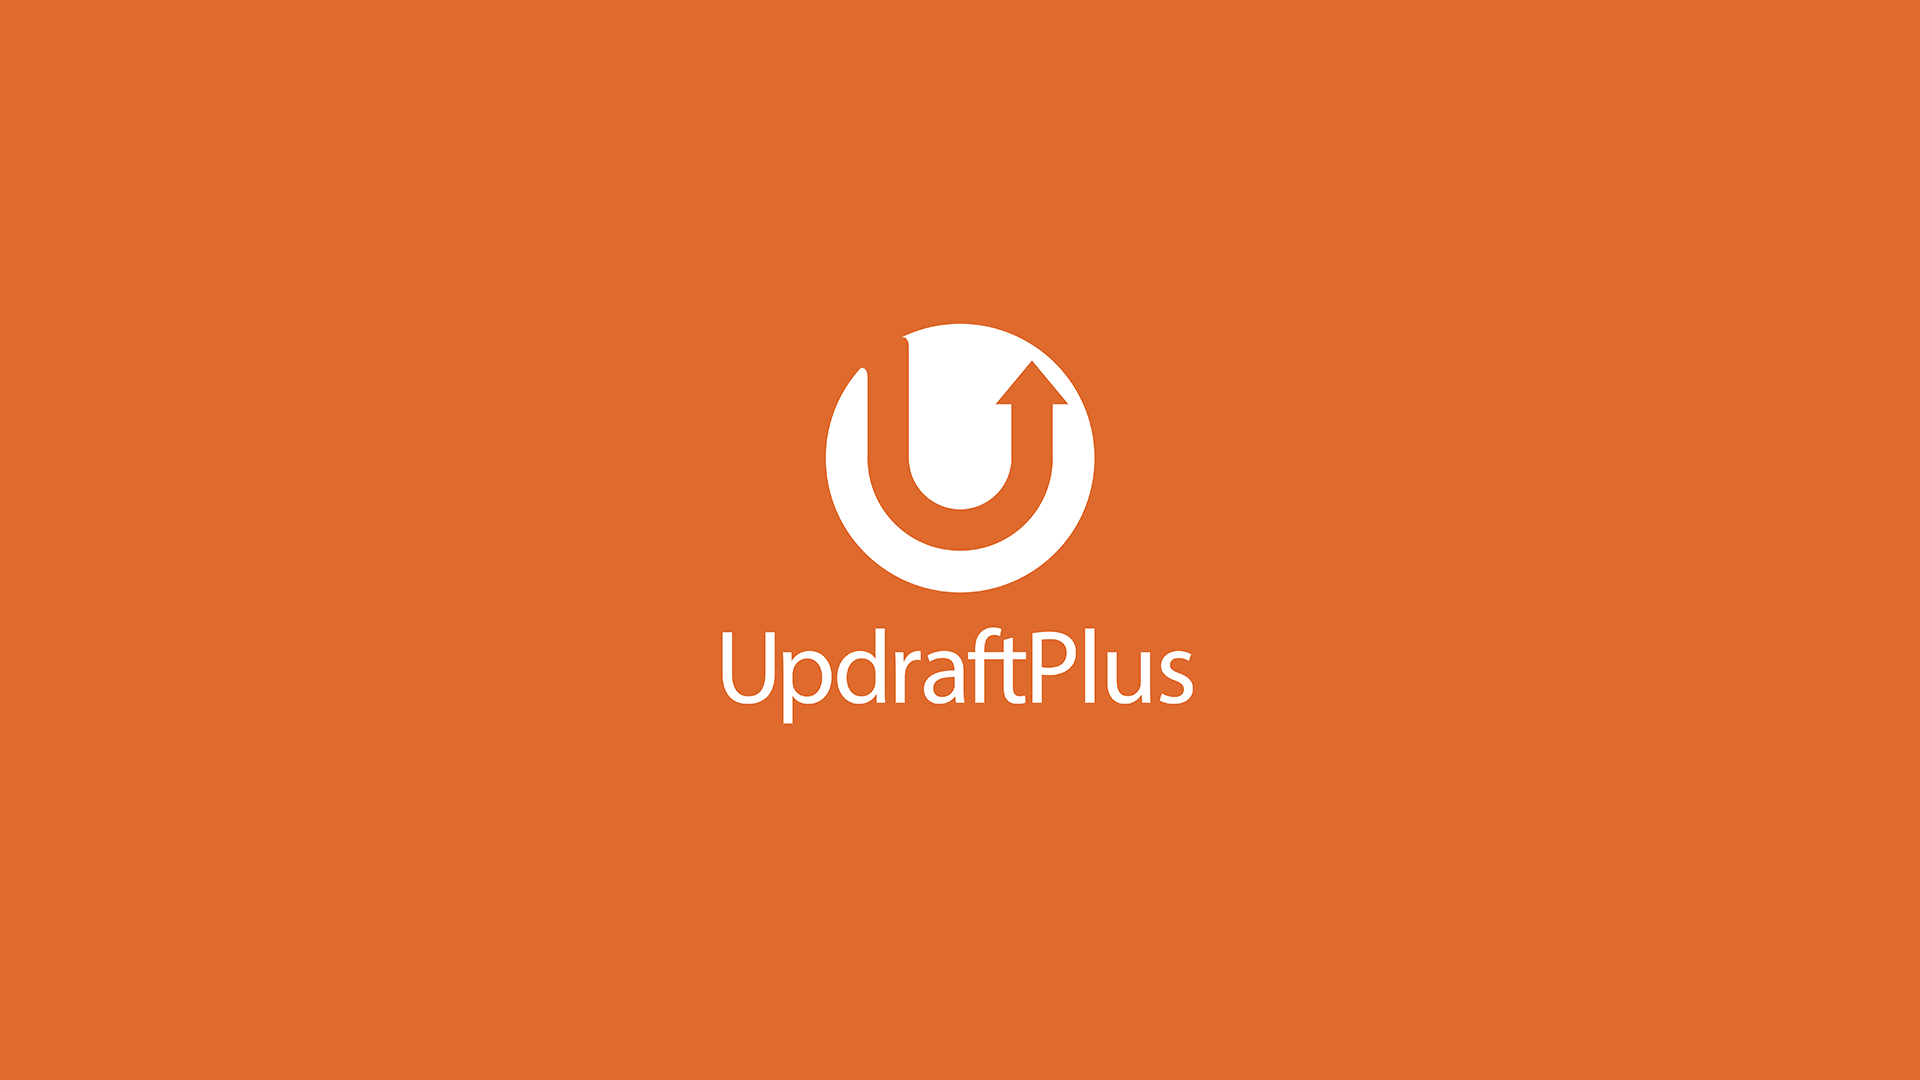 Logo of UpdraftPlus WordPress backup plugin